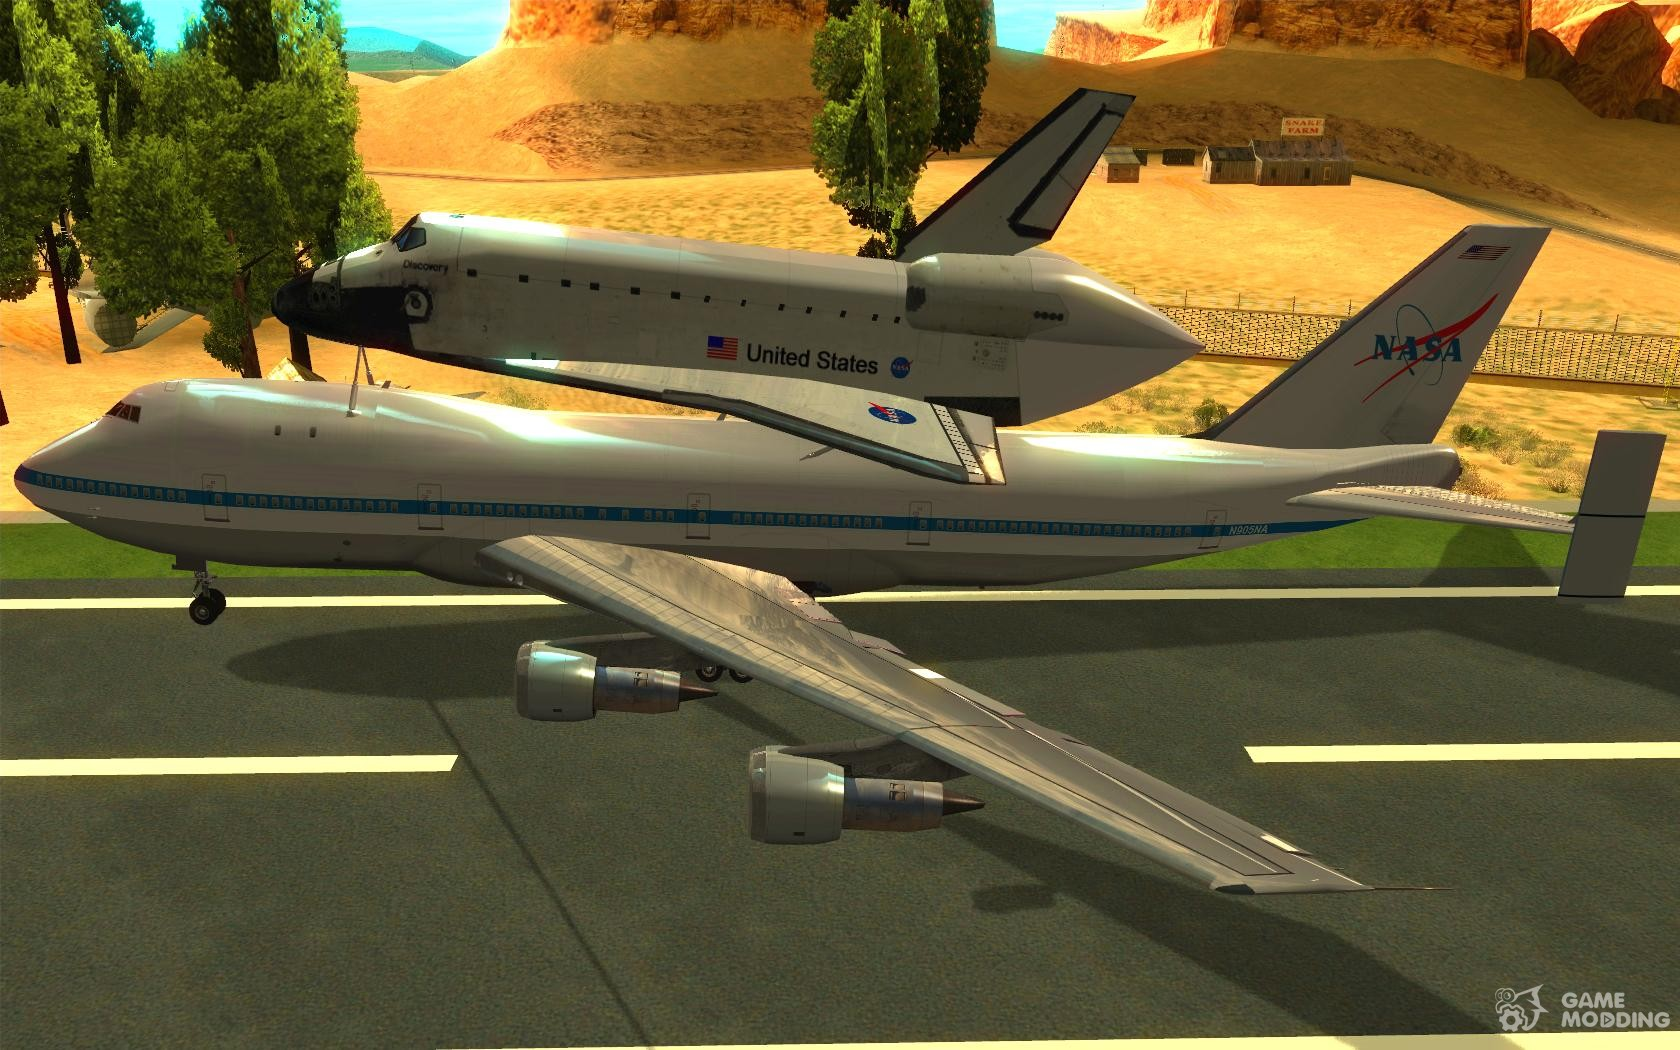 gta 5 space shuttle mission - photo #39